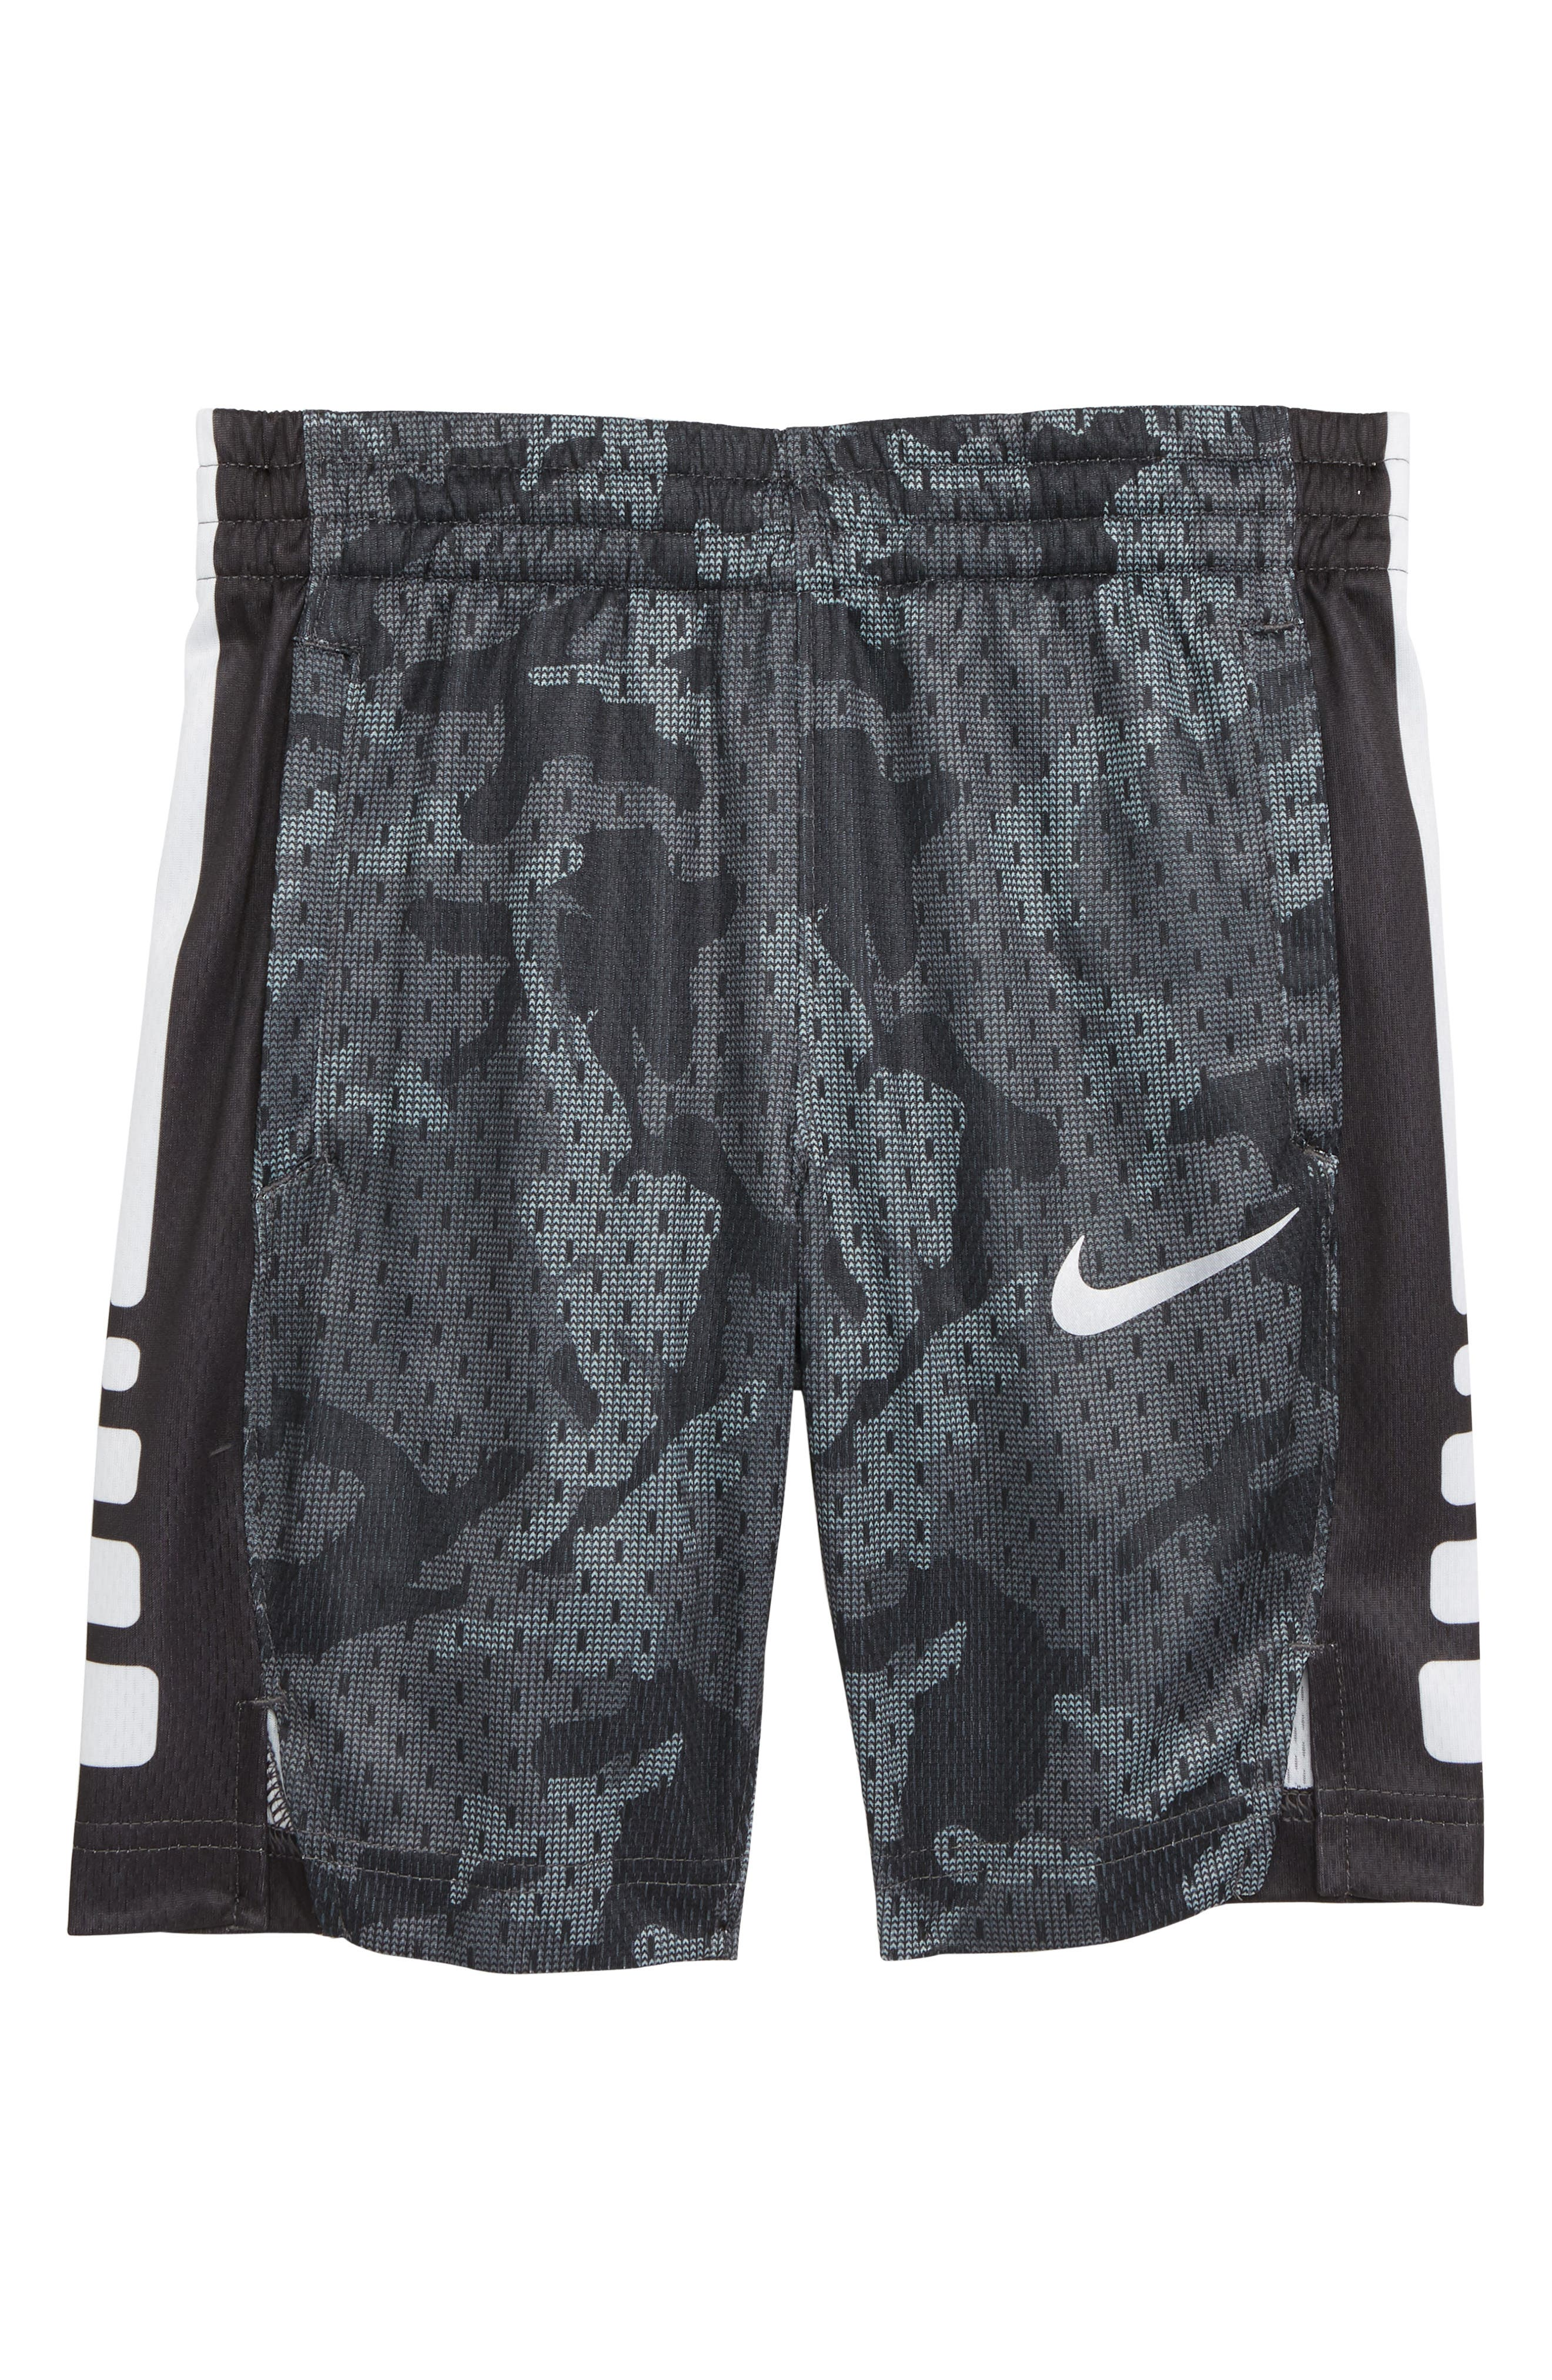 Dry Elite Basketball Shorts,                         Main,                         color, WOLF GREY